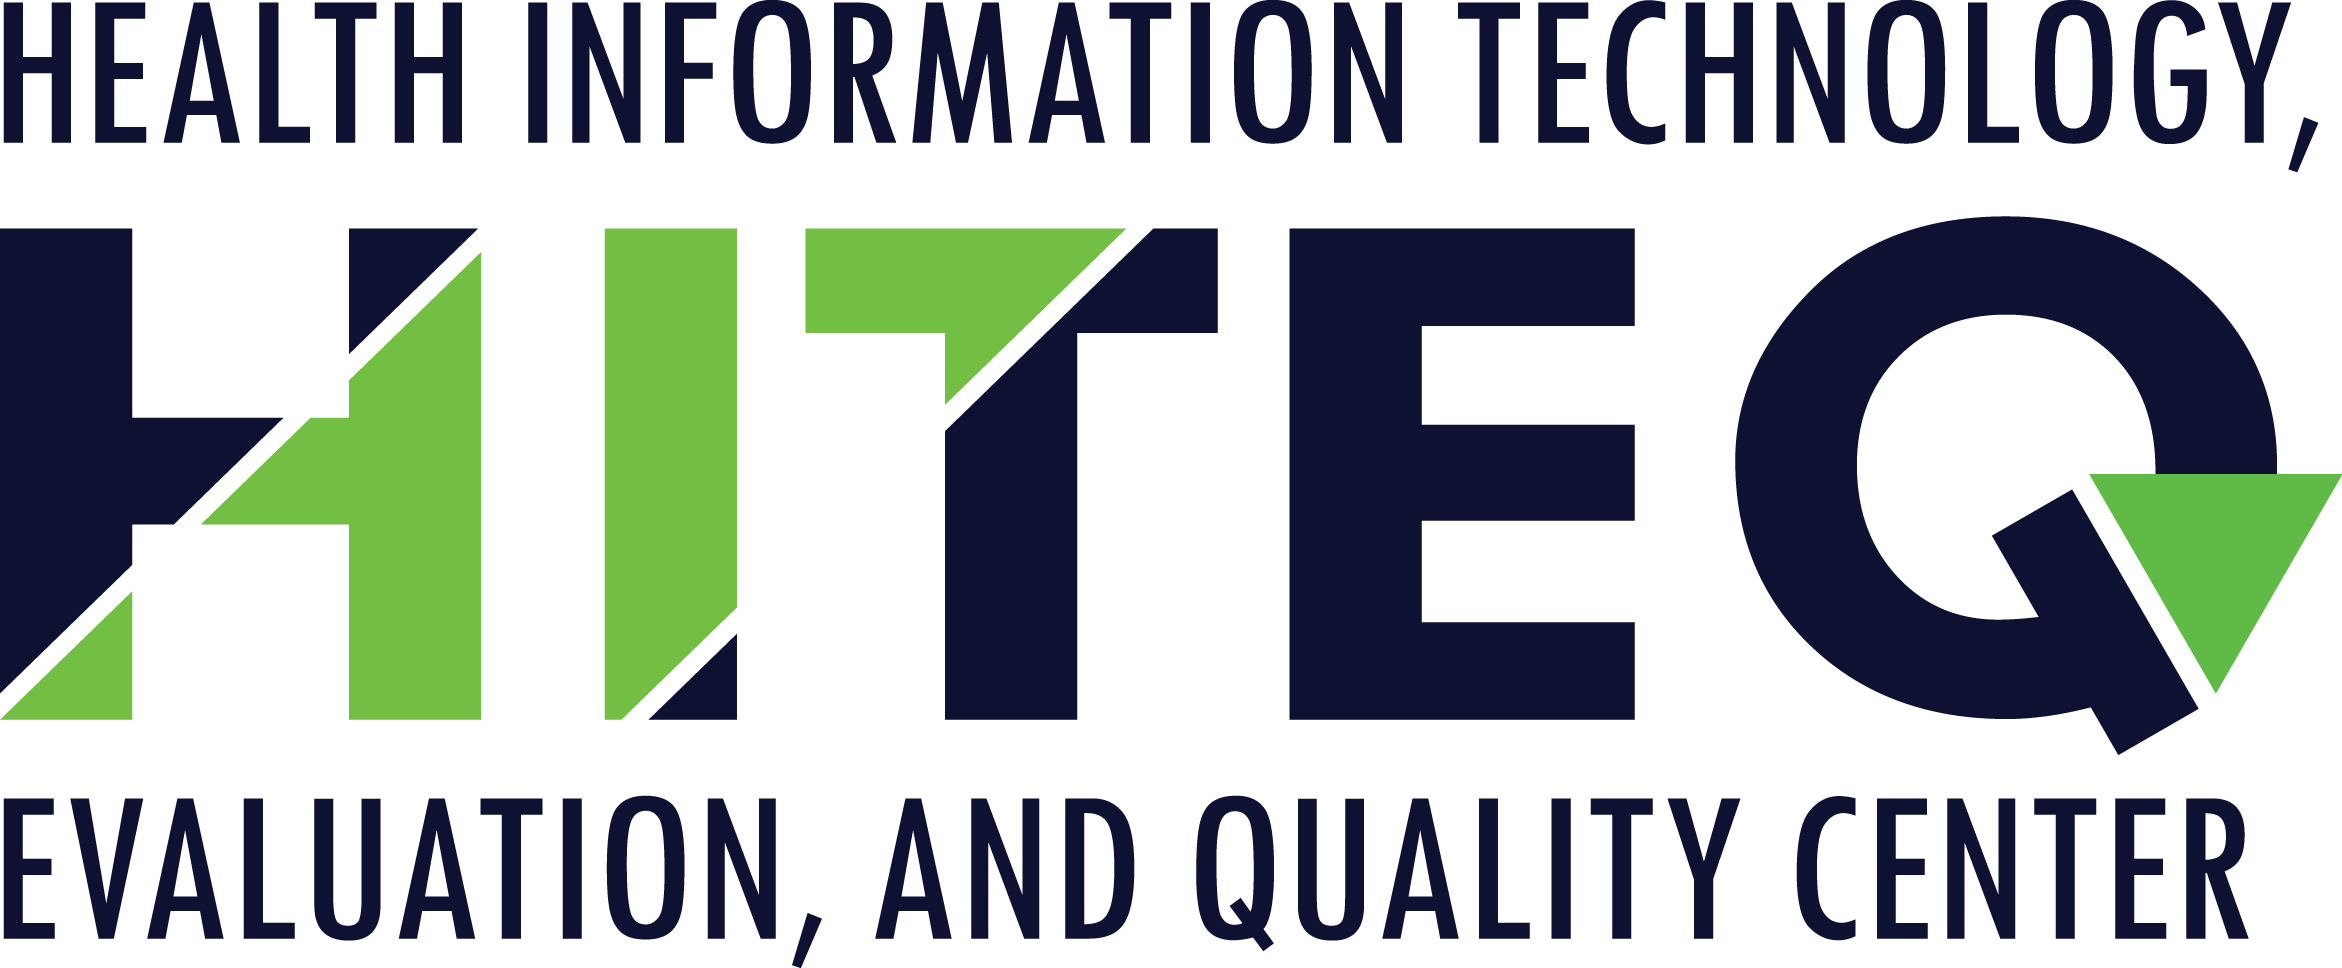 logo for Health Information Technology, Evaluation, and Quality Center